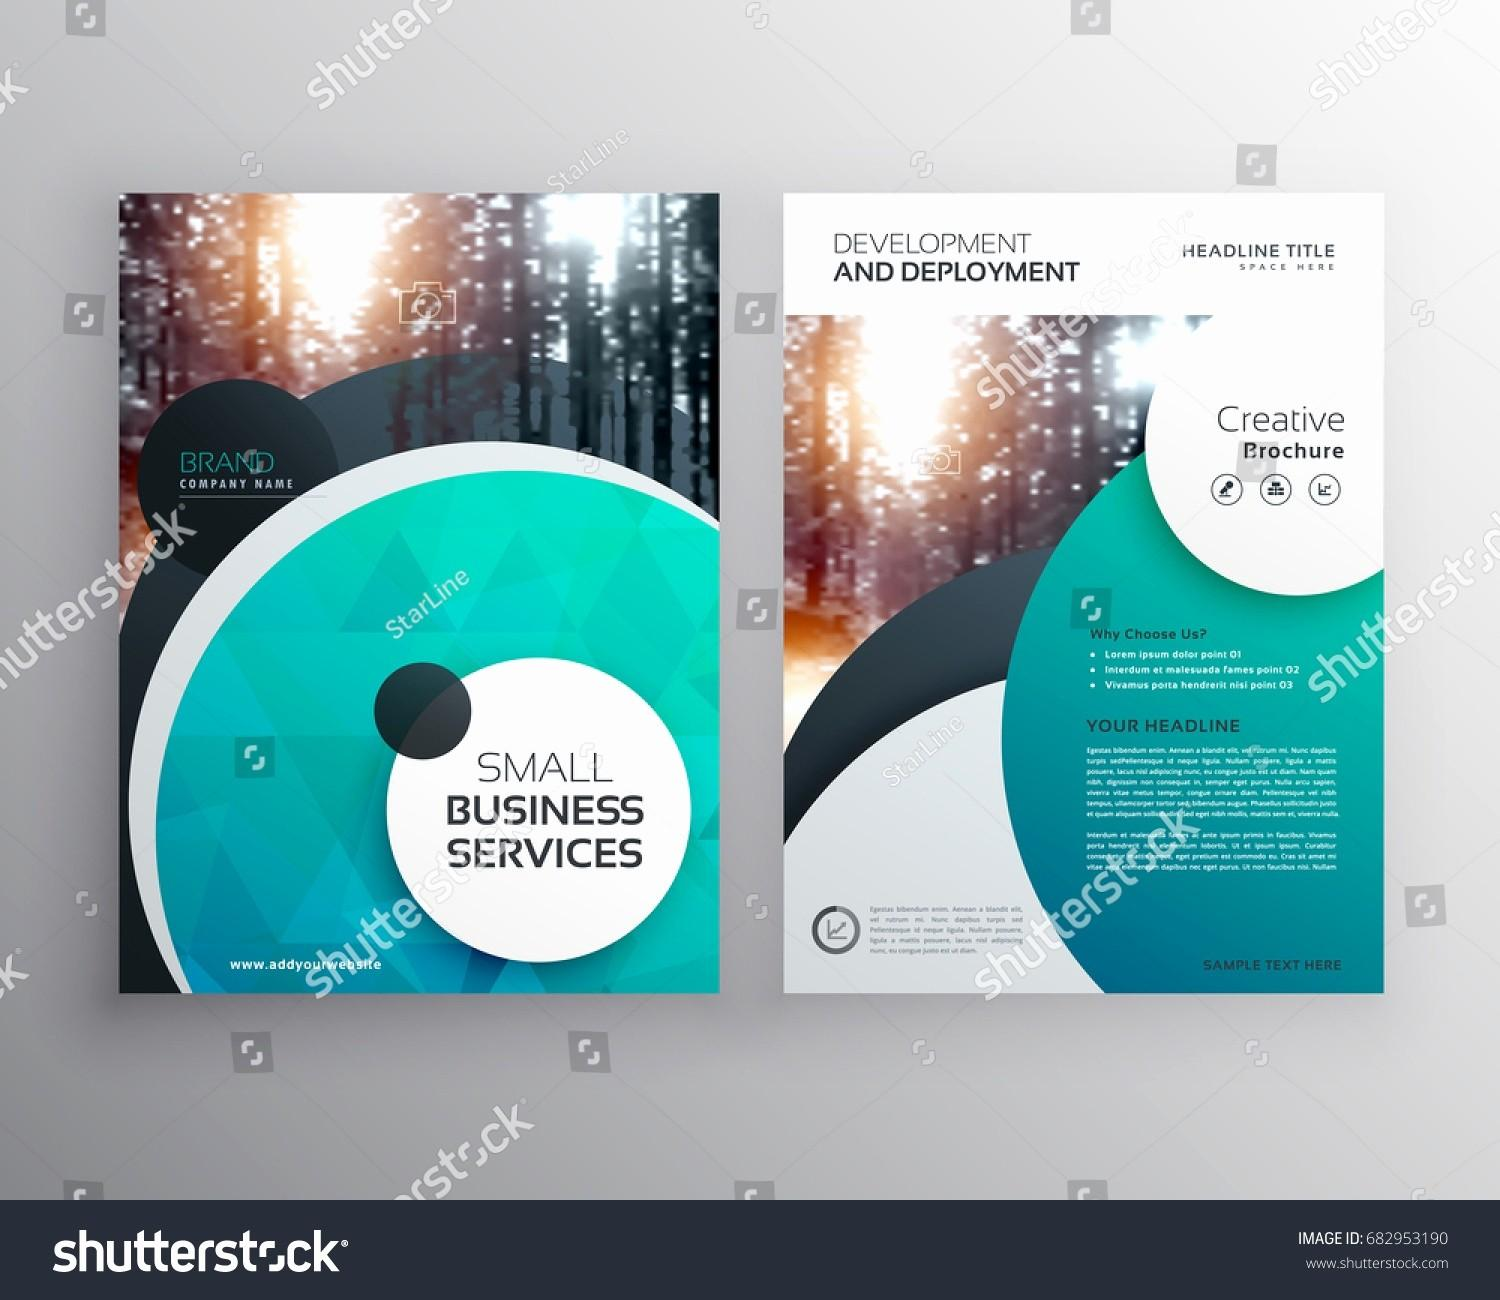 Brochure Maker Template